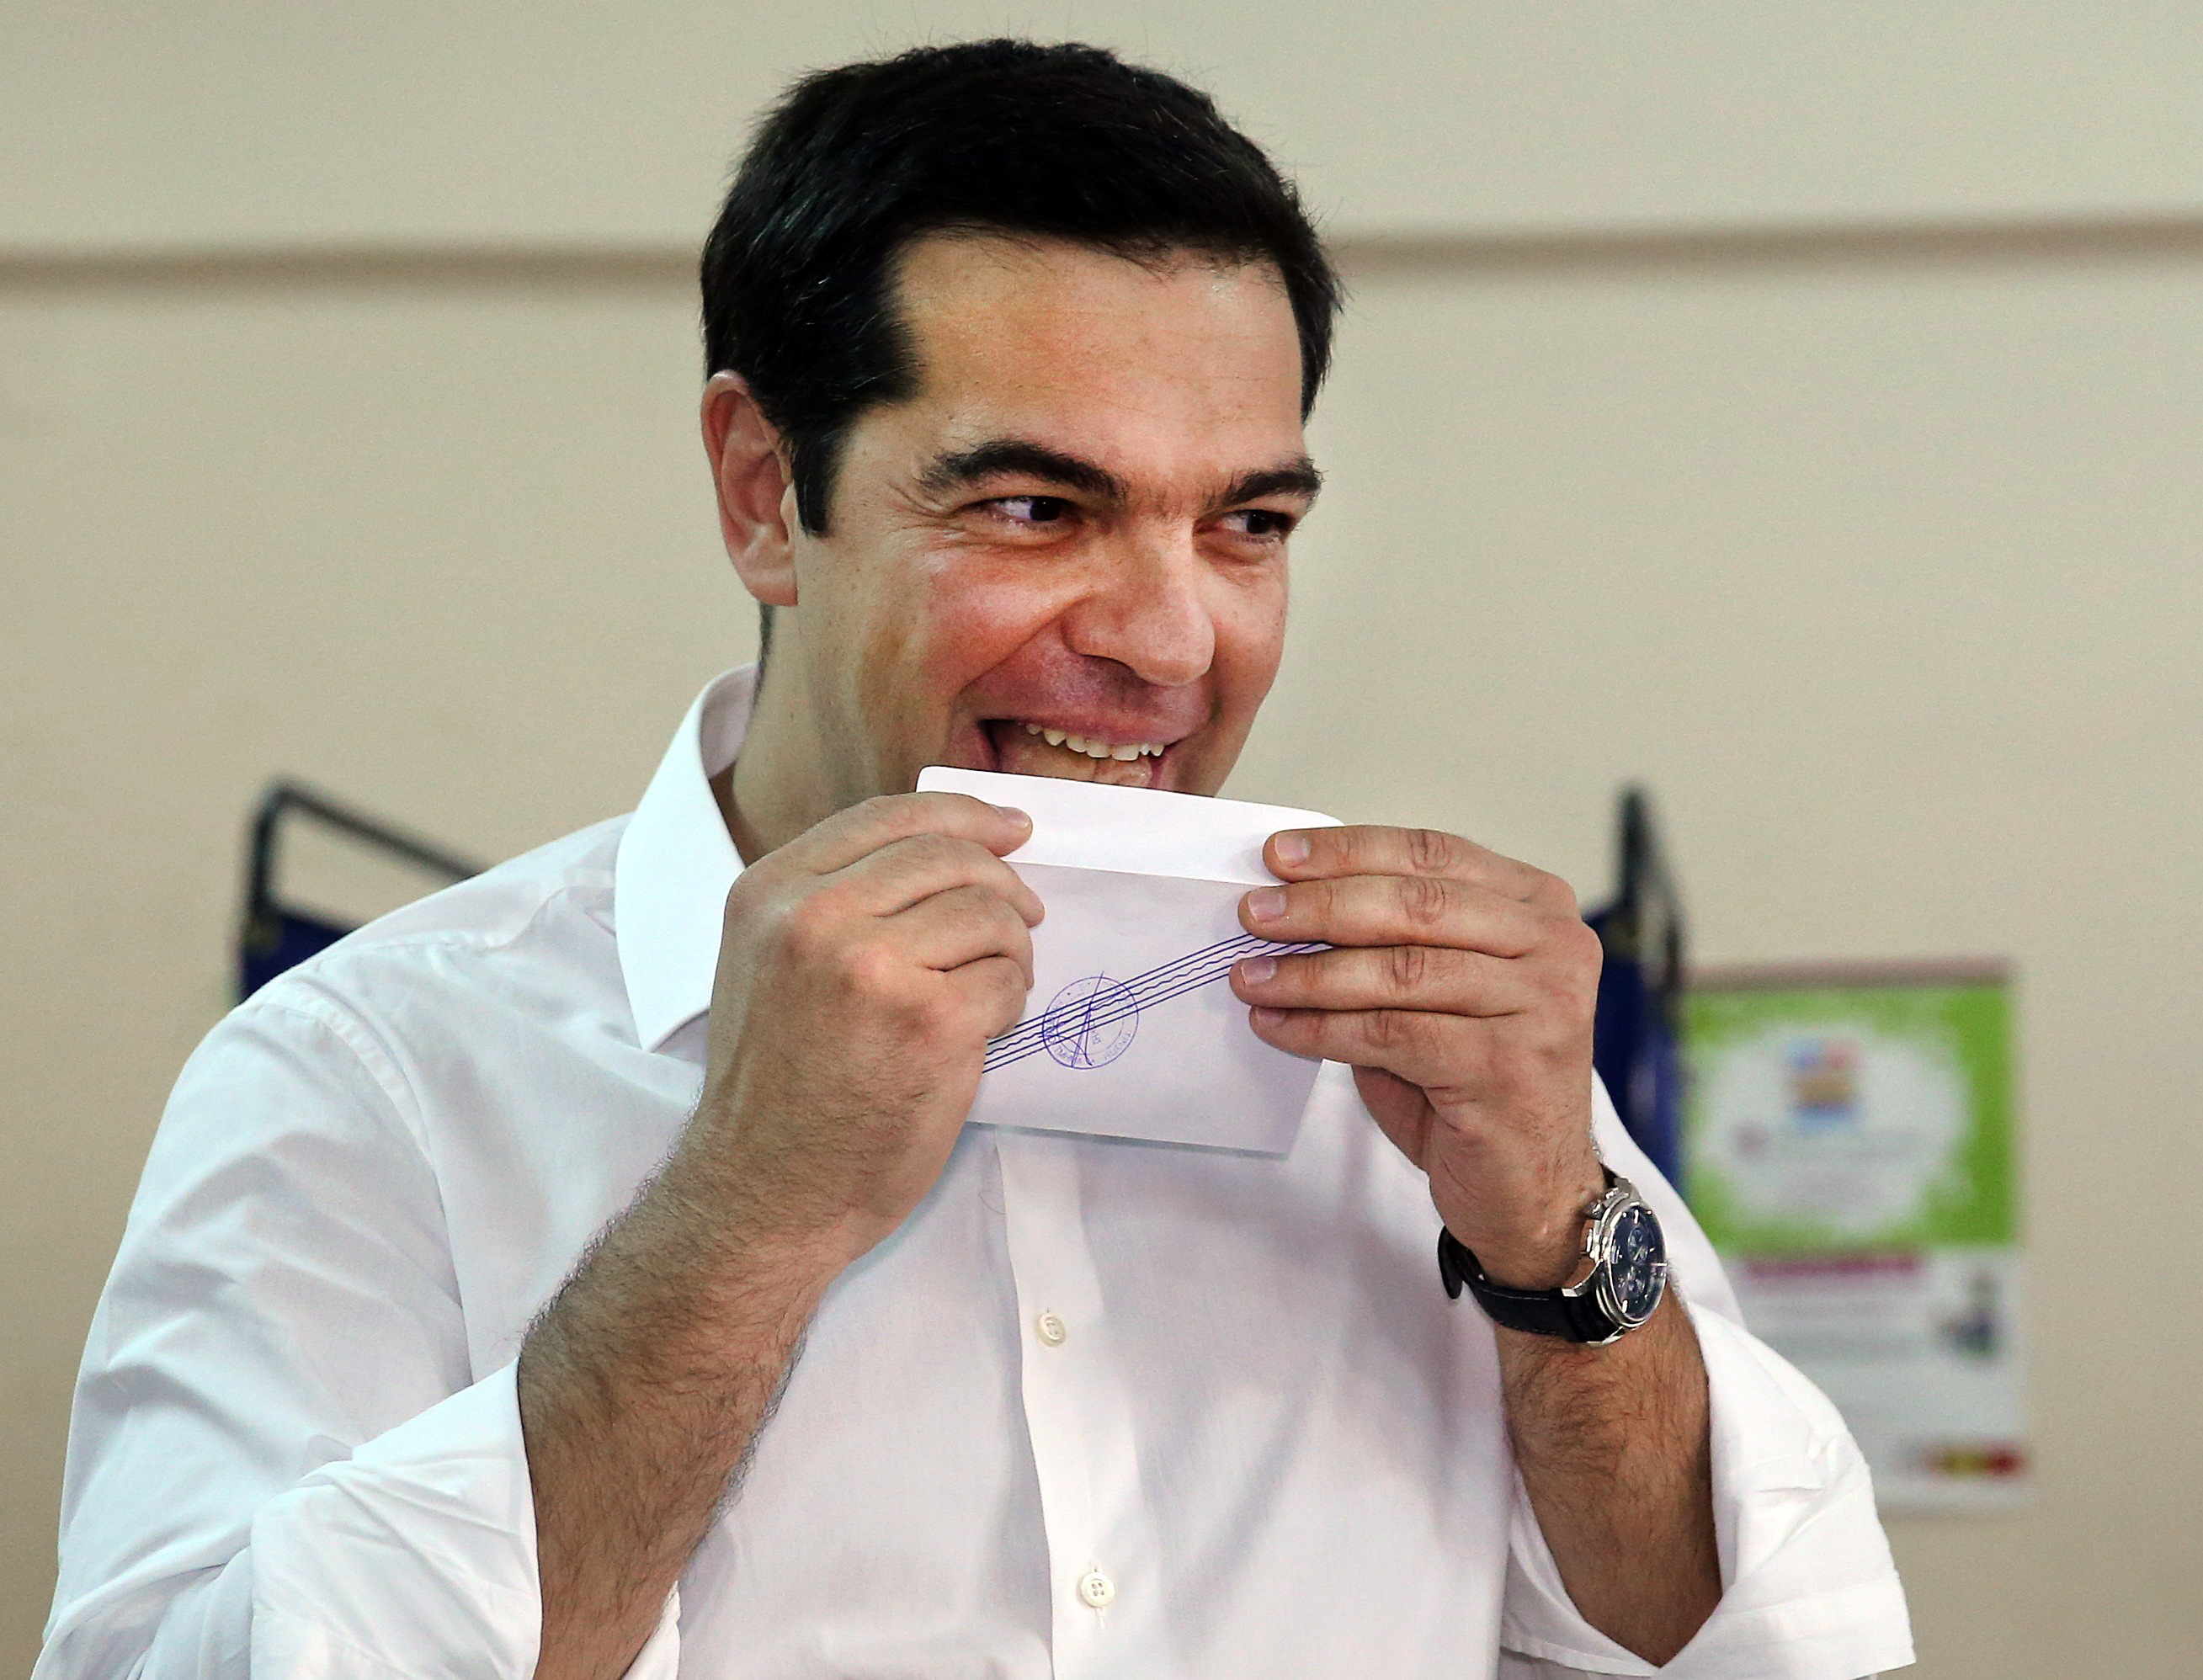 Greek Prime Minister Alexis Tsipras licks his ballot envelope before voting at a polling station in Athens, Greece, on July 5, 2015. Greece voted on Sunday on whether to accept more austerity in exchange for international aid, in a high-stakes referendum likely to determine whether it leaves the eurozone after seven years of economic pain. Photo by Alkis Konstantinidis/Reuters